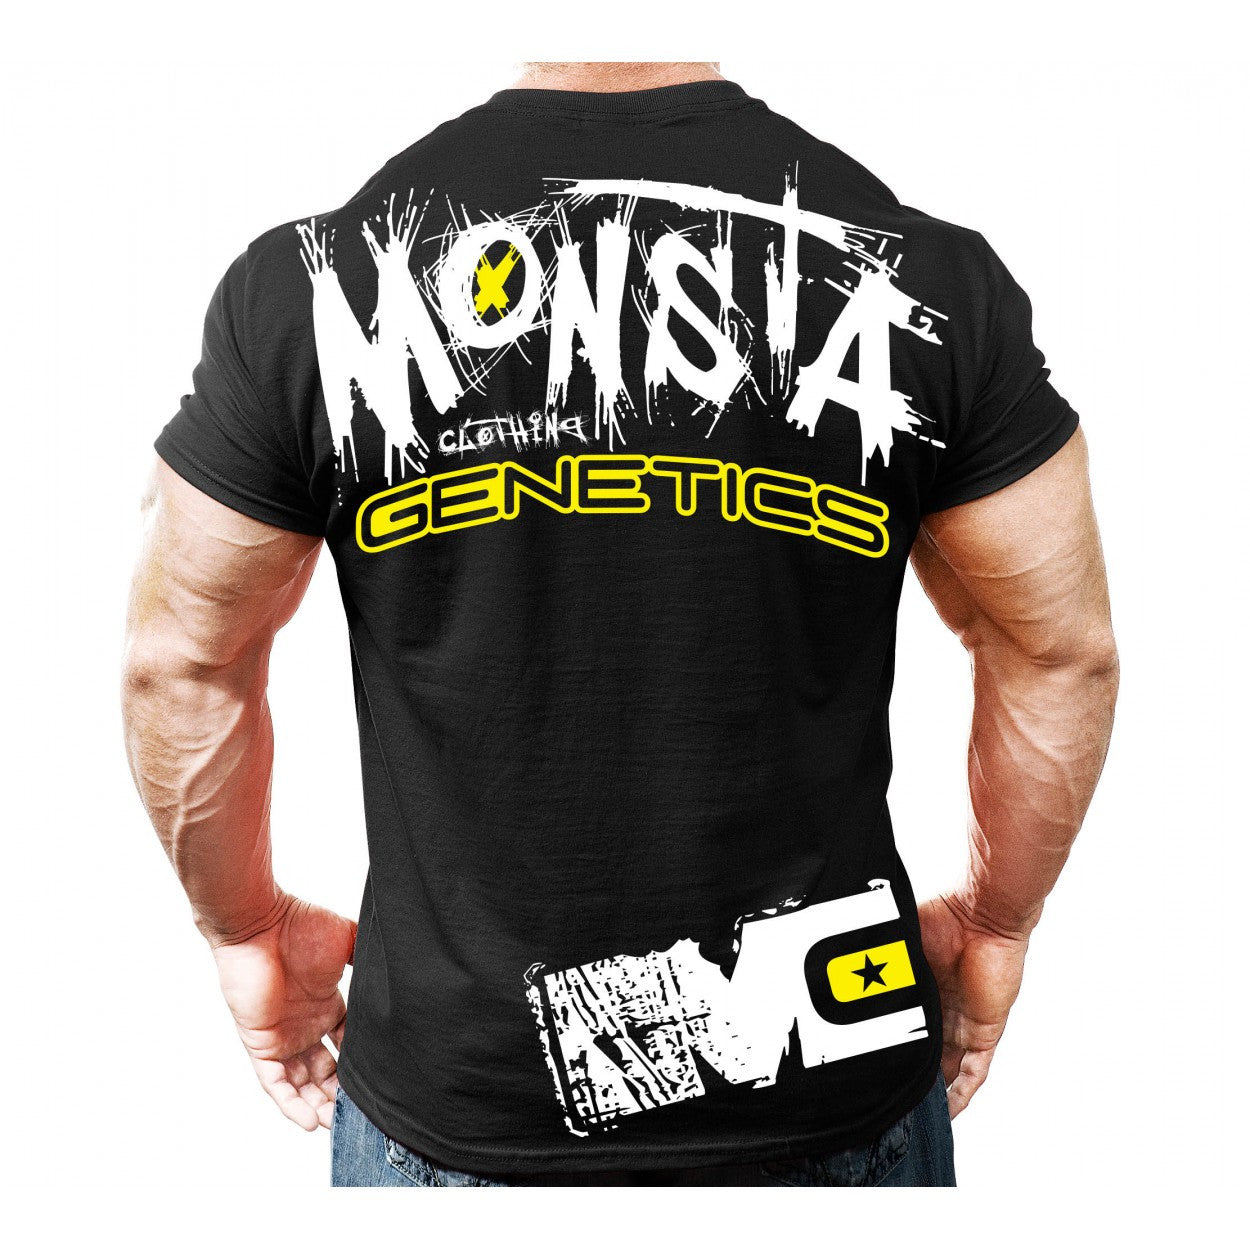 Tee: Monsta Genetics - Monsta Clothing Australia